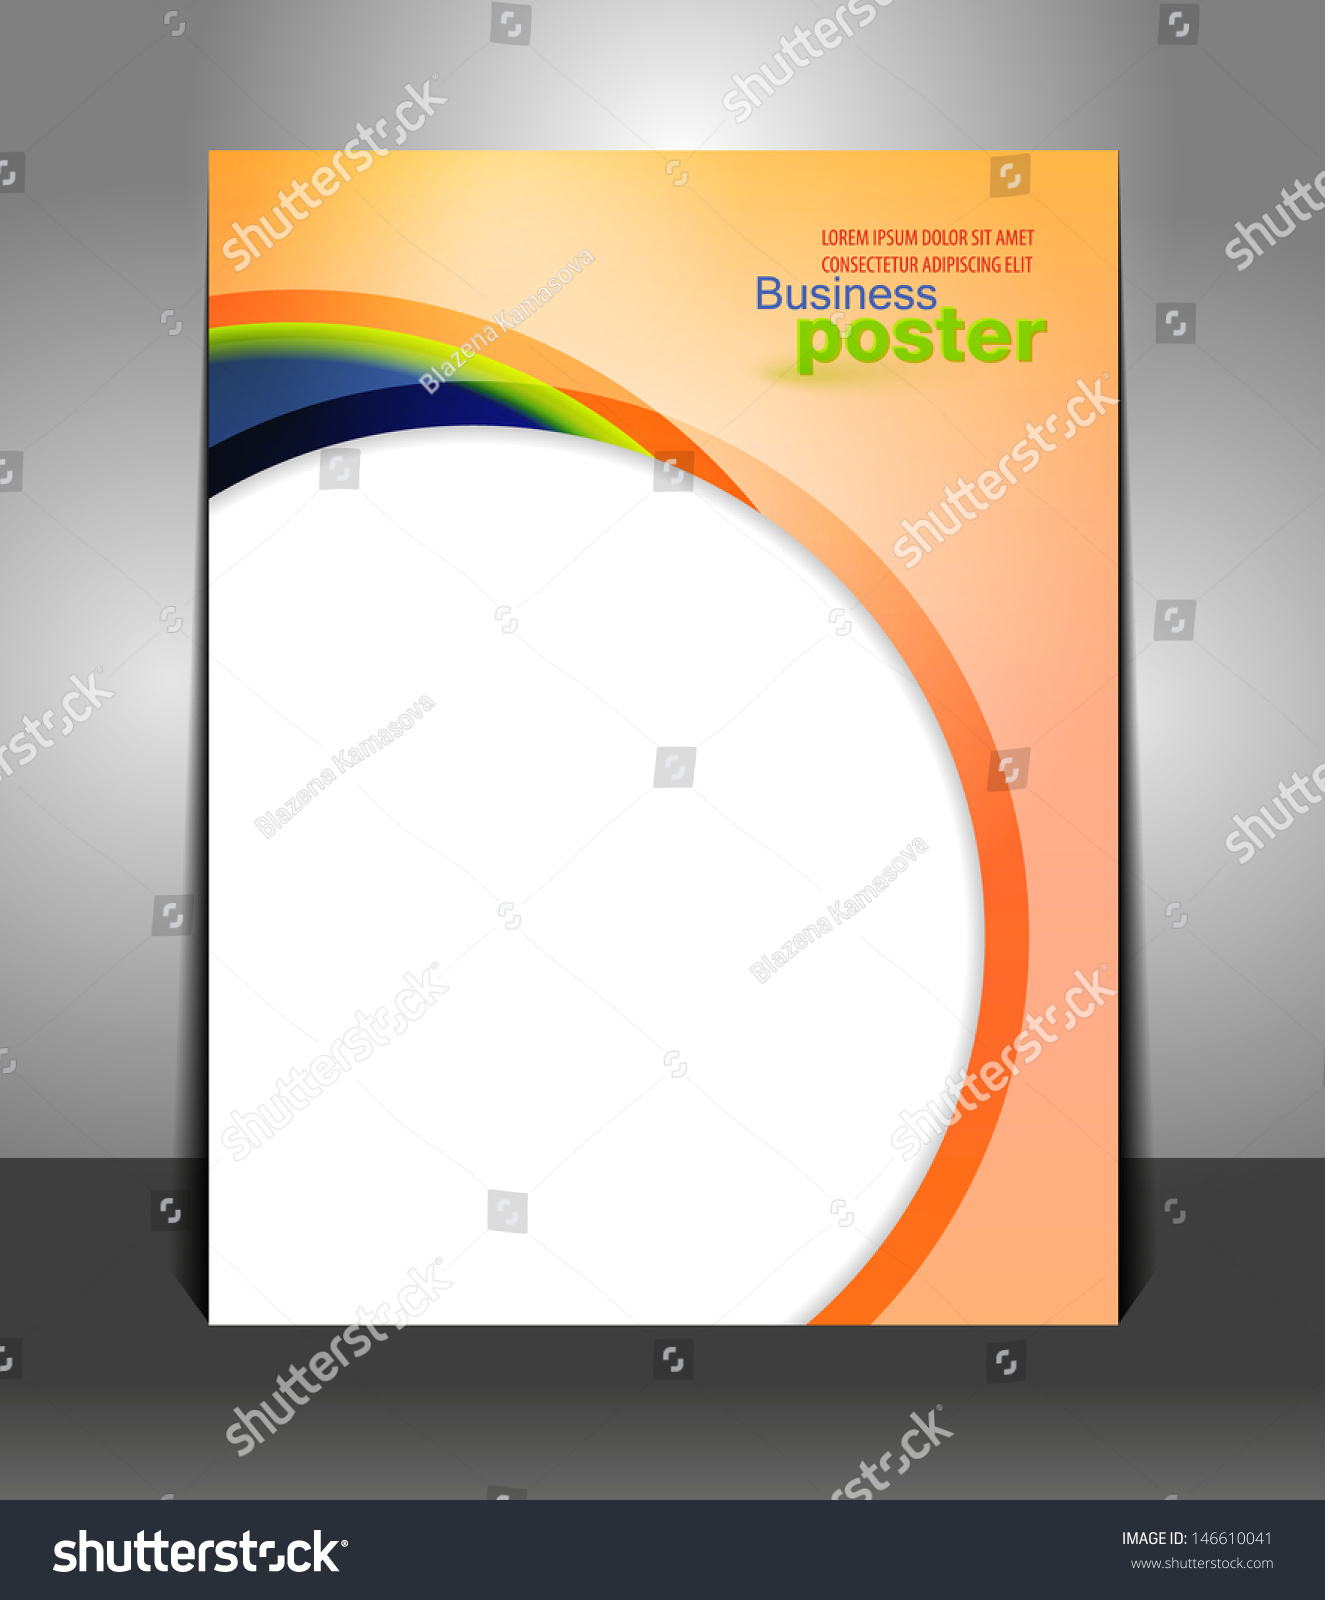 Poster design layout templates - Stylish Presentation Of Business Poster Flyer Design Content Background Design Layout Template